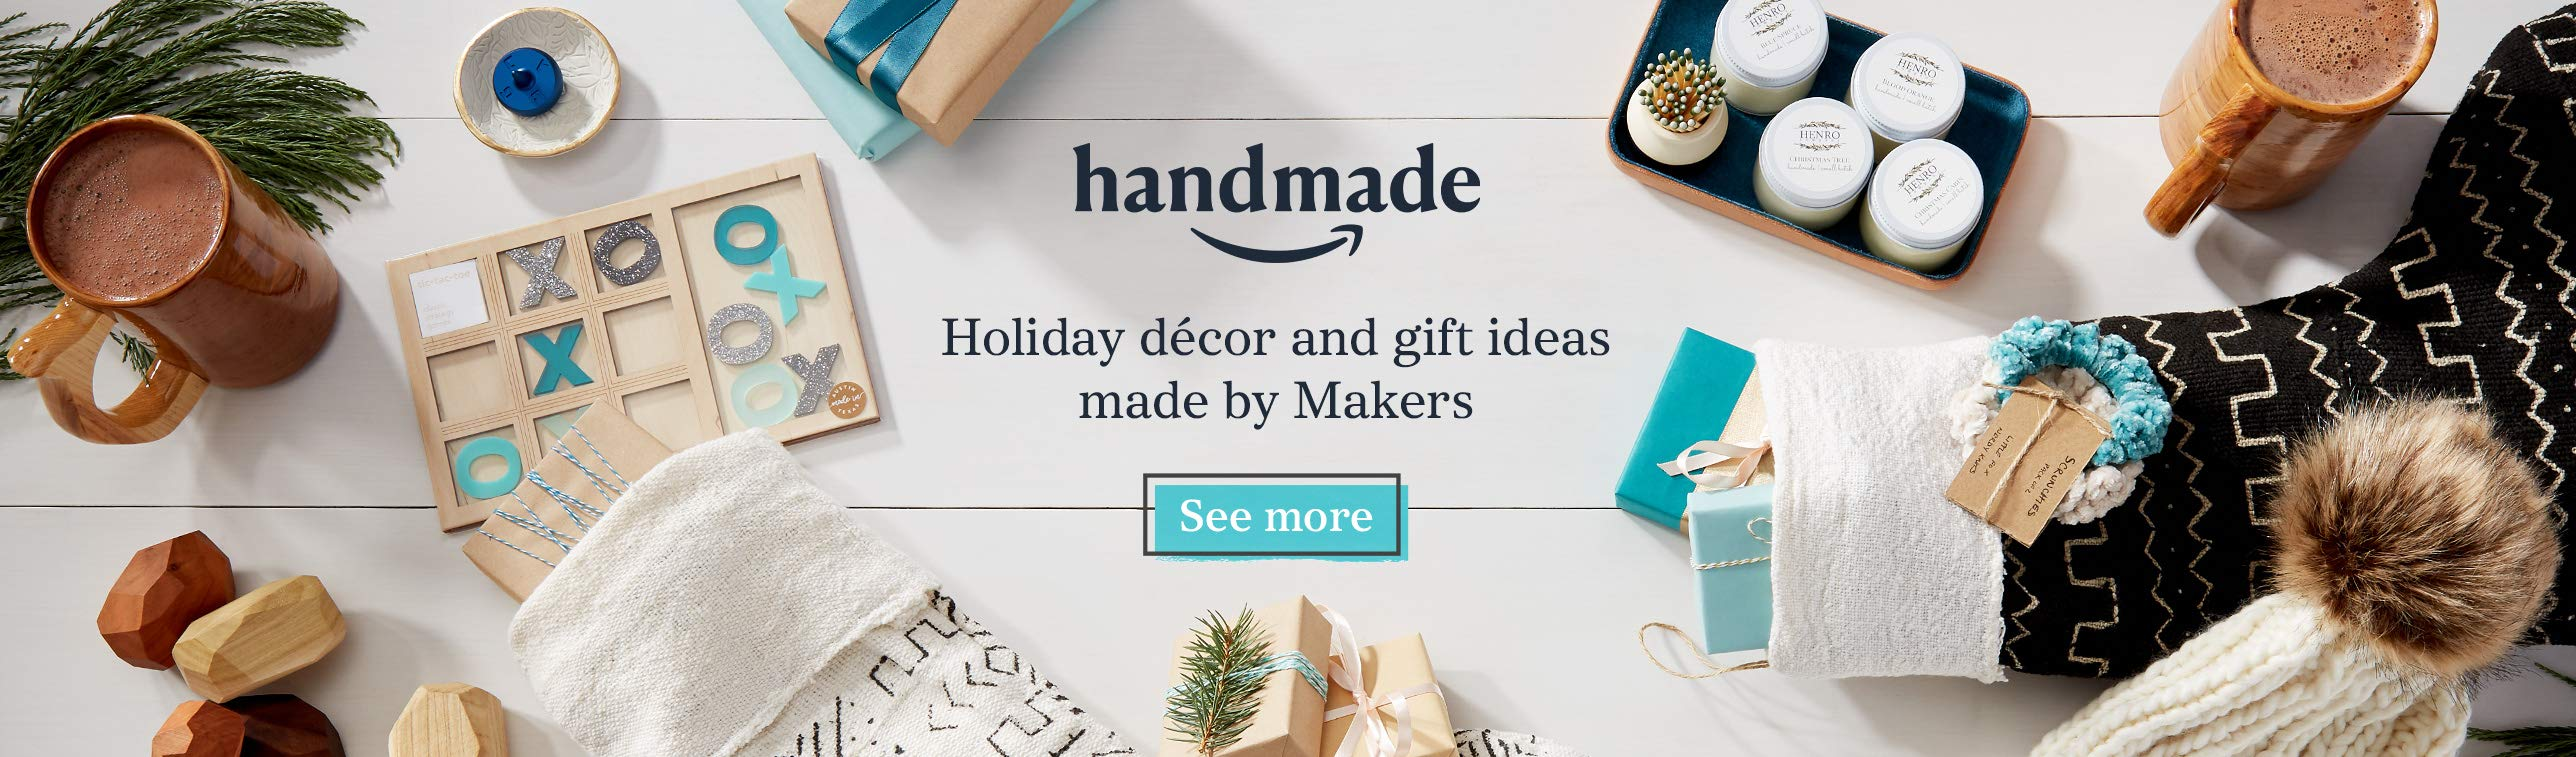 Holiday décor and gift idea made by Makers